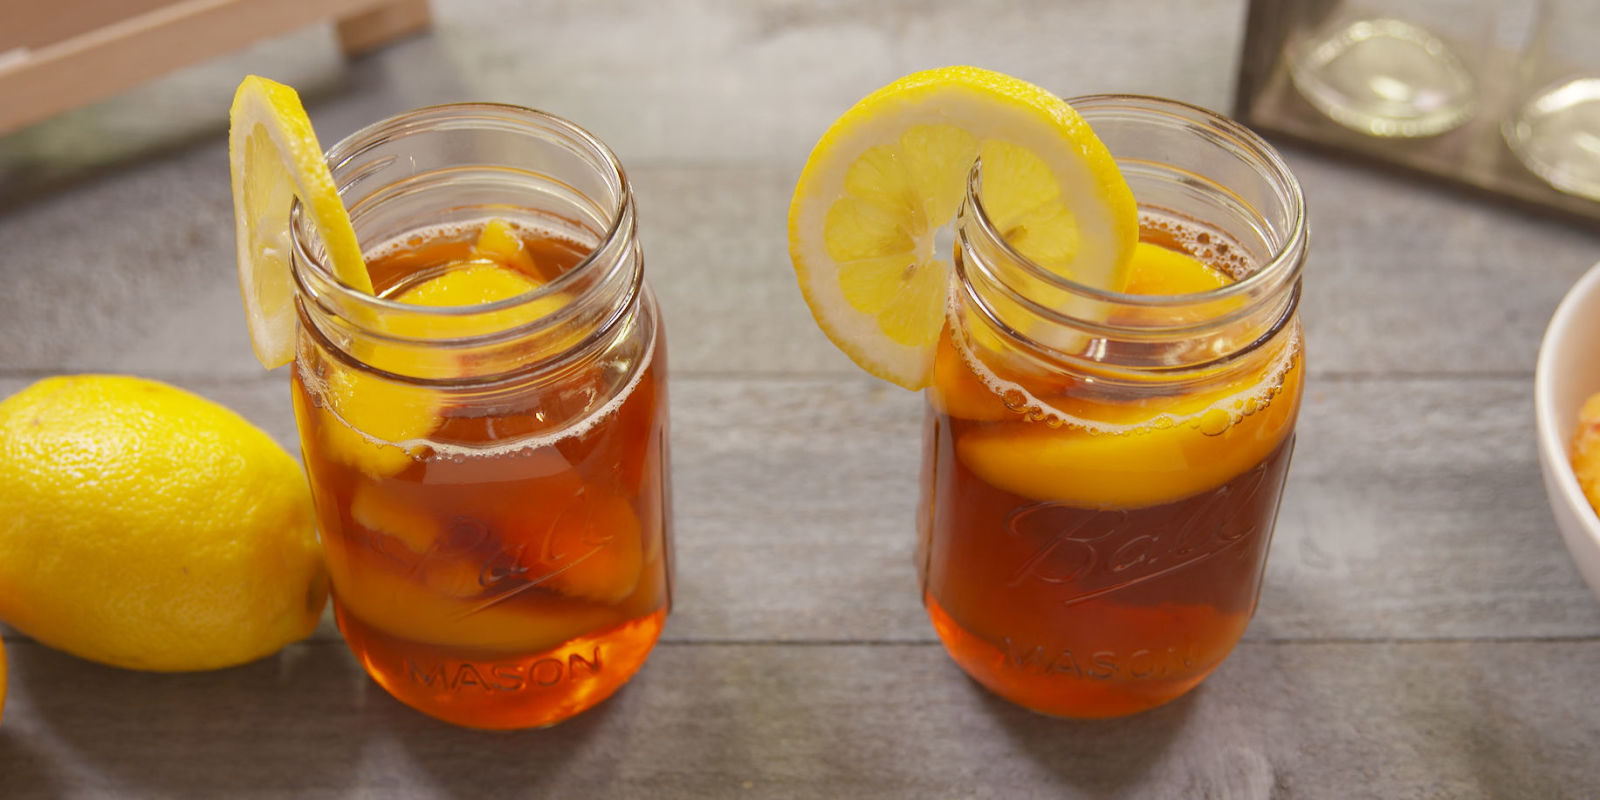 ... Upper' Fan Will Appreciate Our Magnolia-Inspired Spiked Sweet Tea